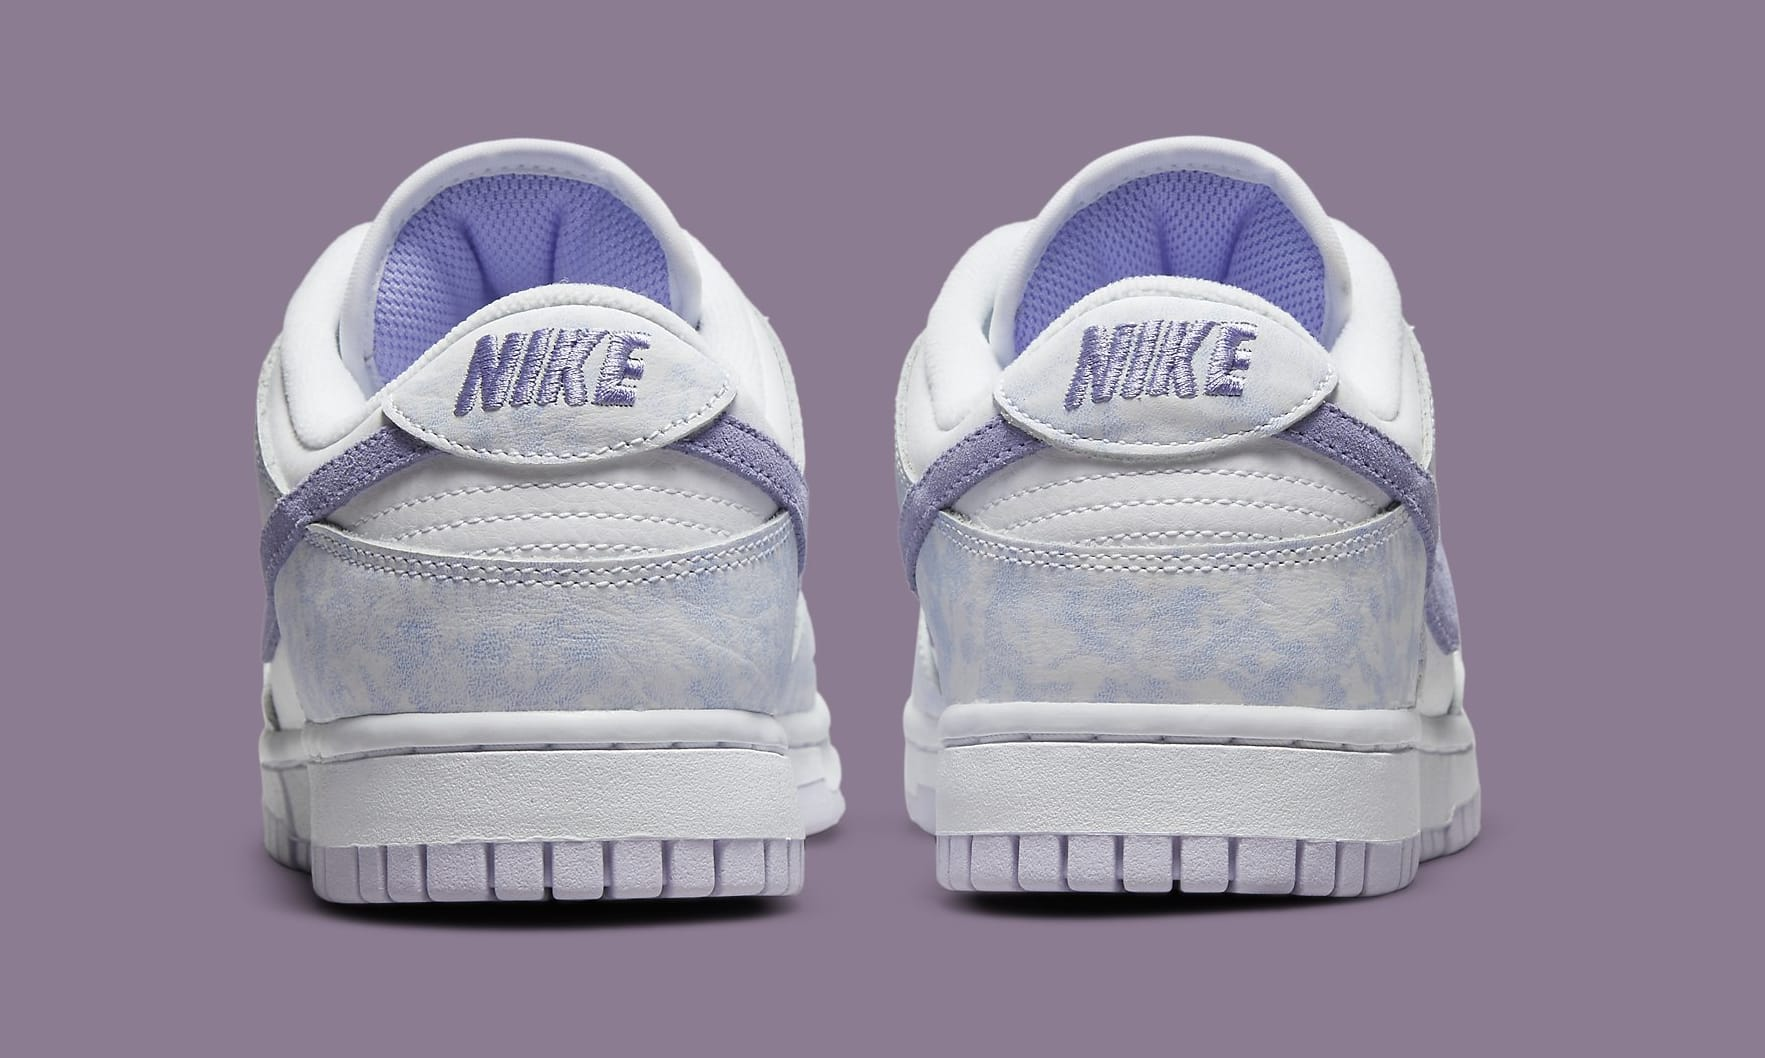 Nike Dunk Low Women's 'Purple Pulse' DM9467-500 Heel